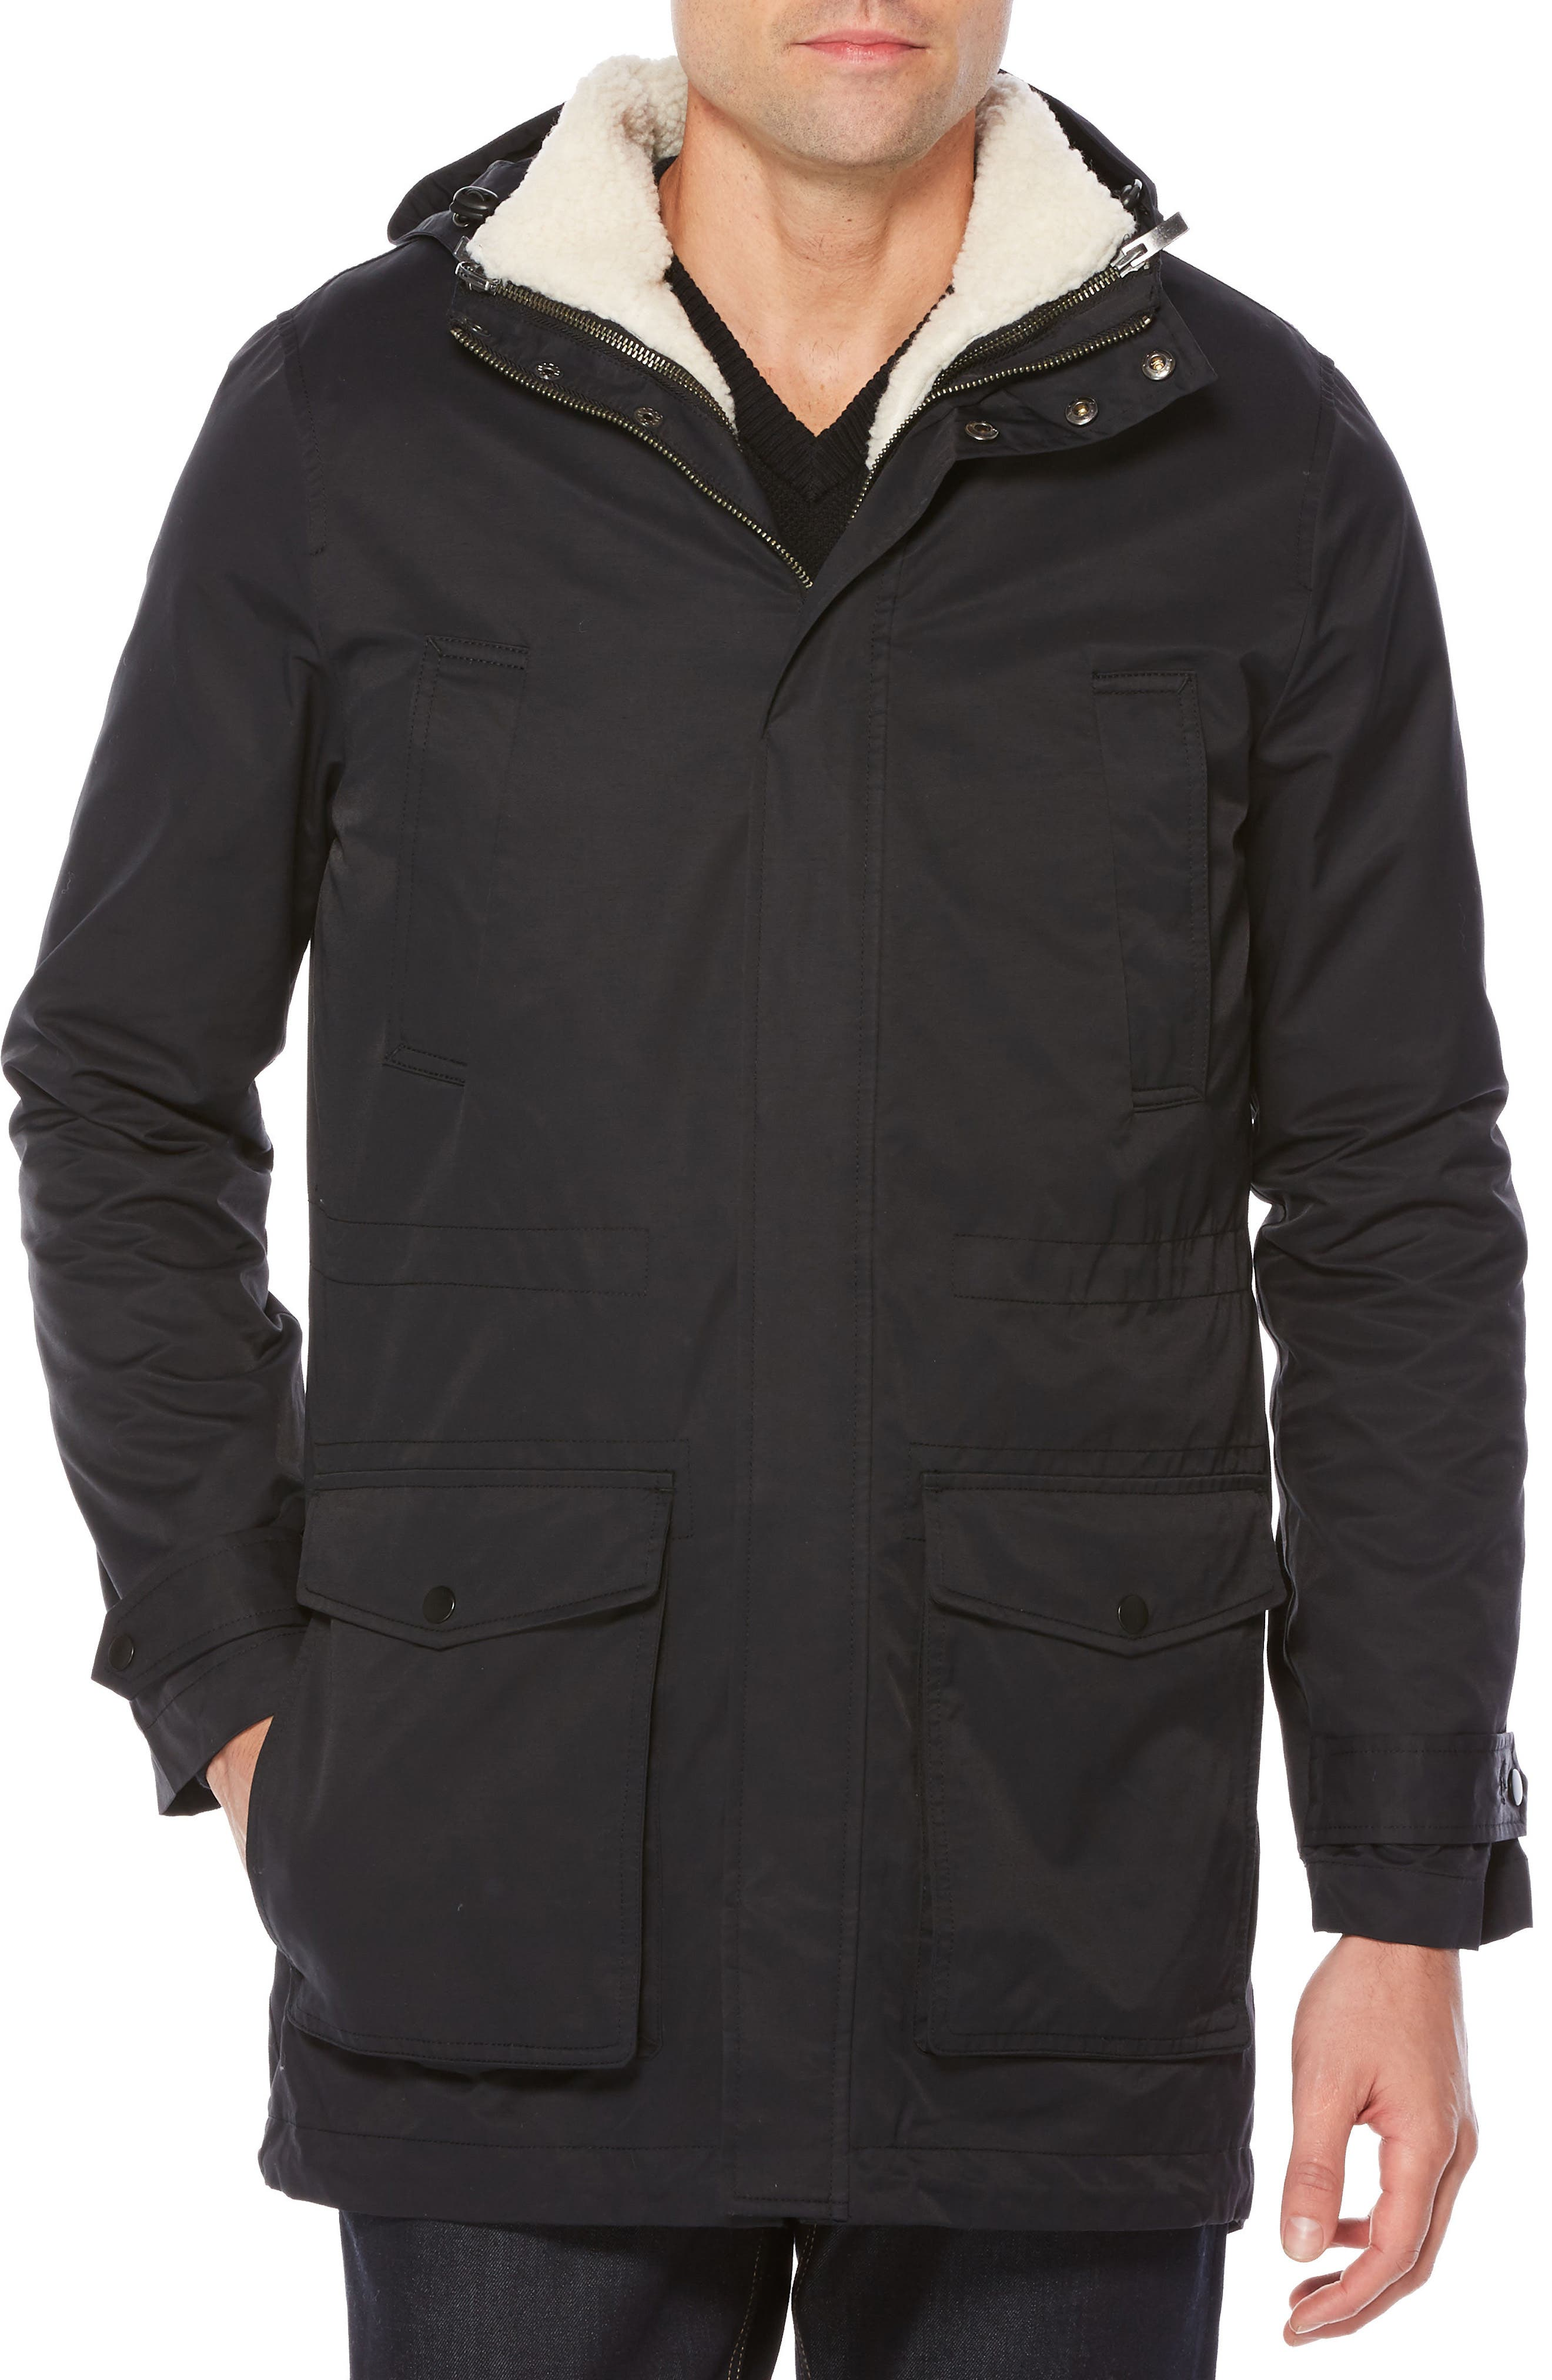 Main Image - Original Penguin 4-in-1 Water Resistant Jacket